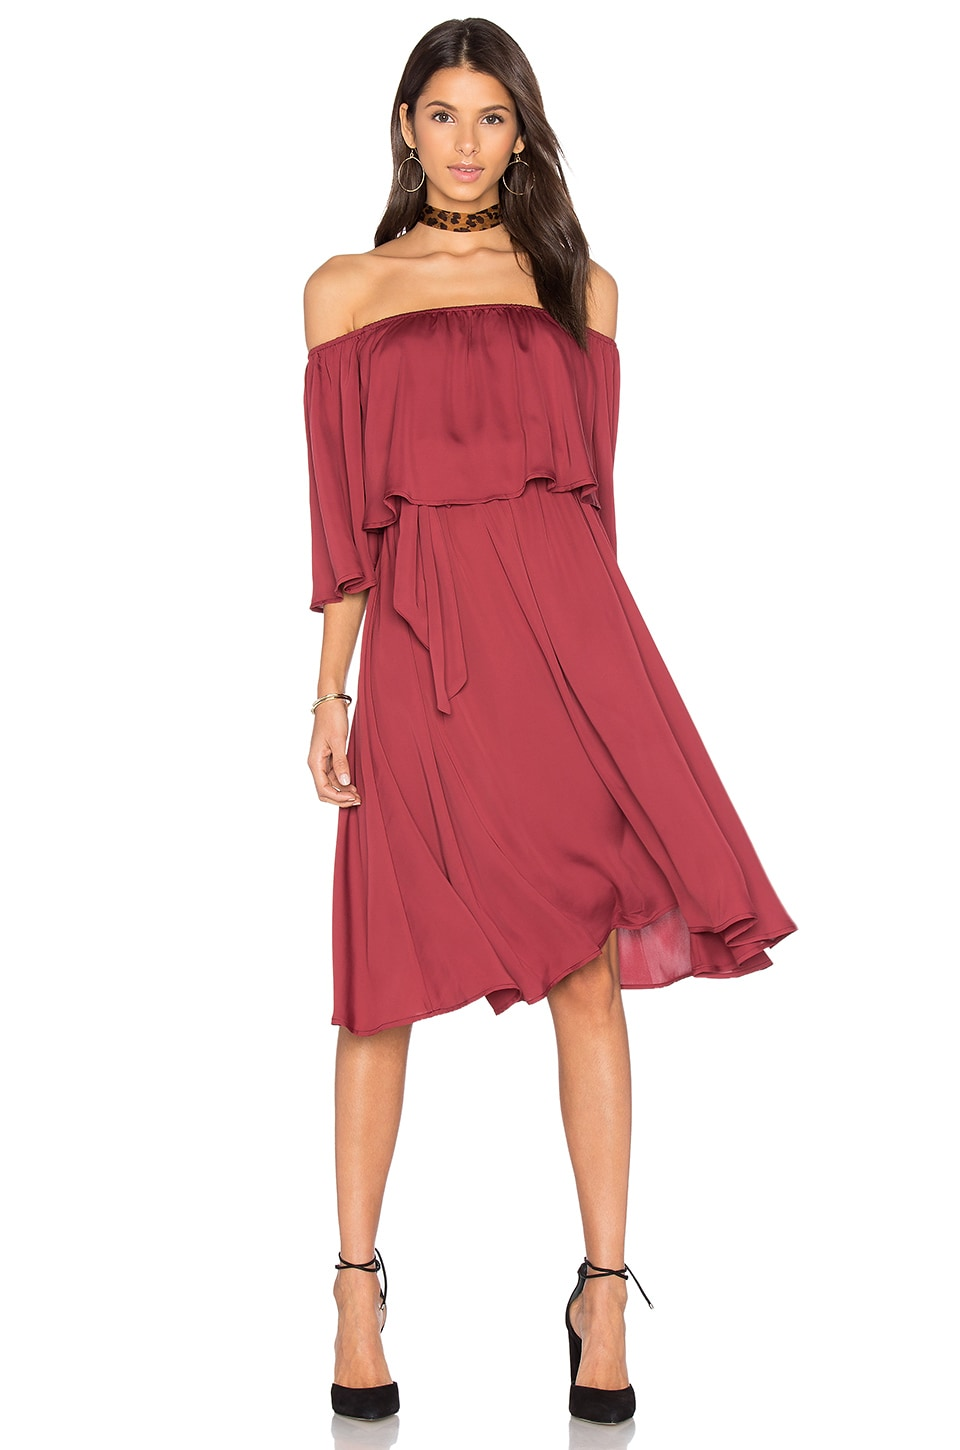 House of Harlow 1960 x REVOLVE Cindy Dress in Vino